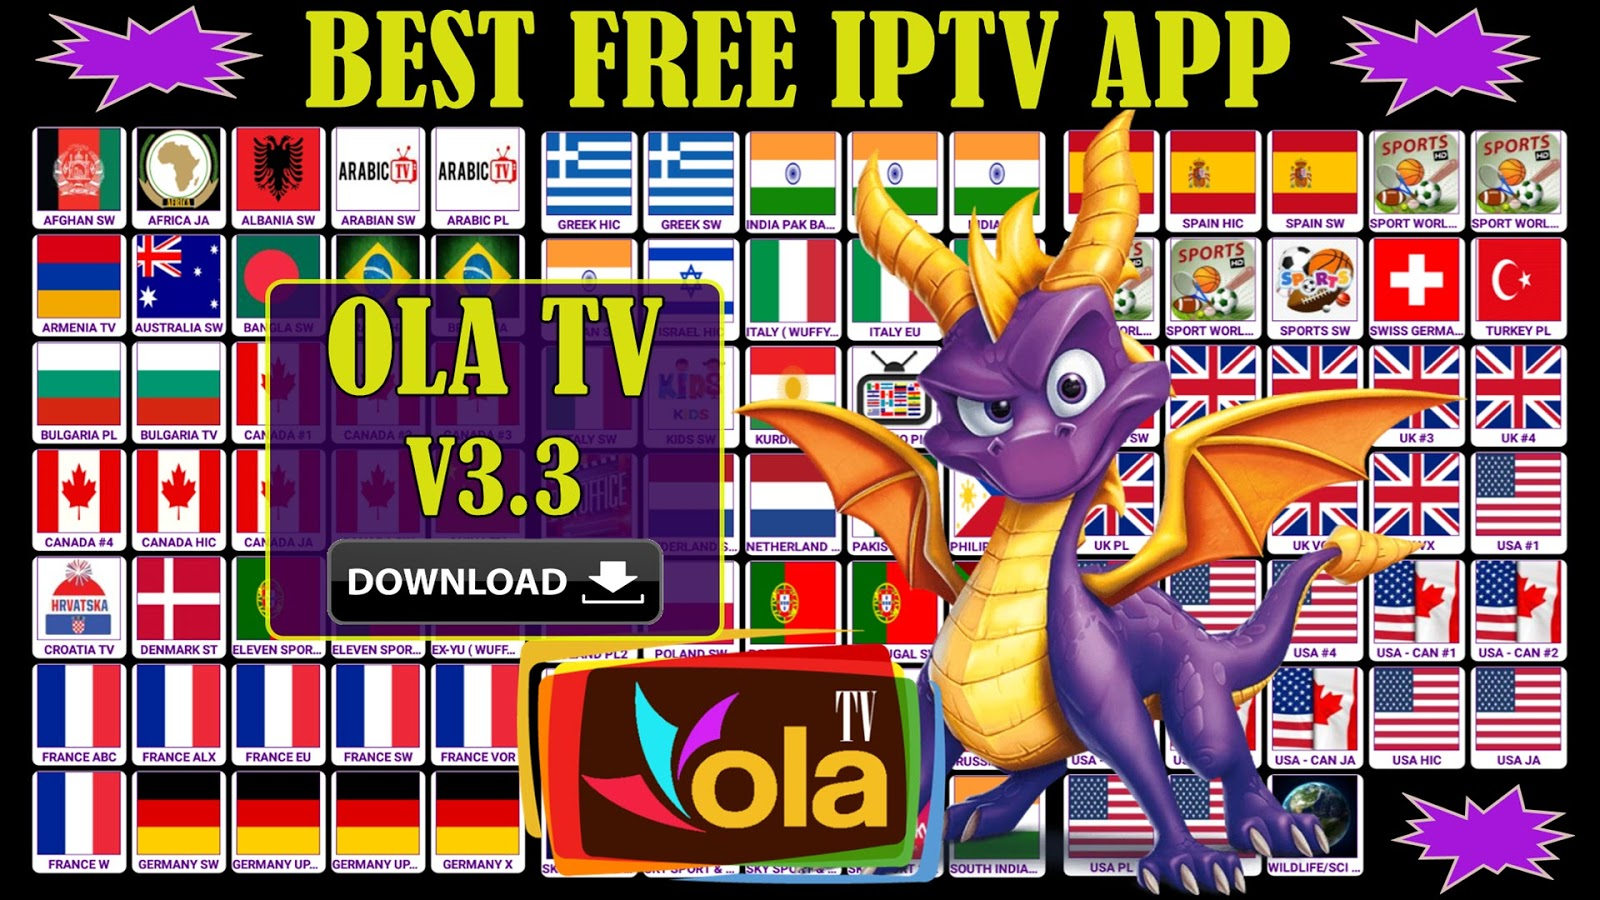 Ola tv 2 8 apk download | OLA TV Apk Download For Android